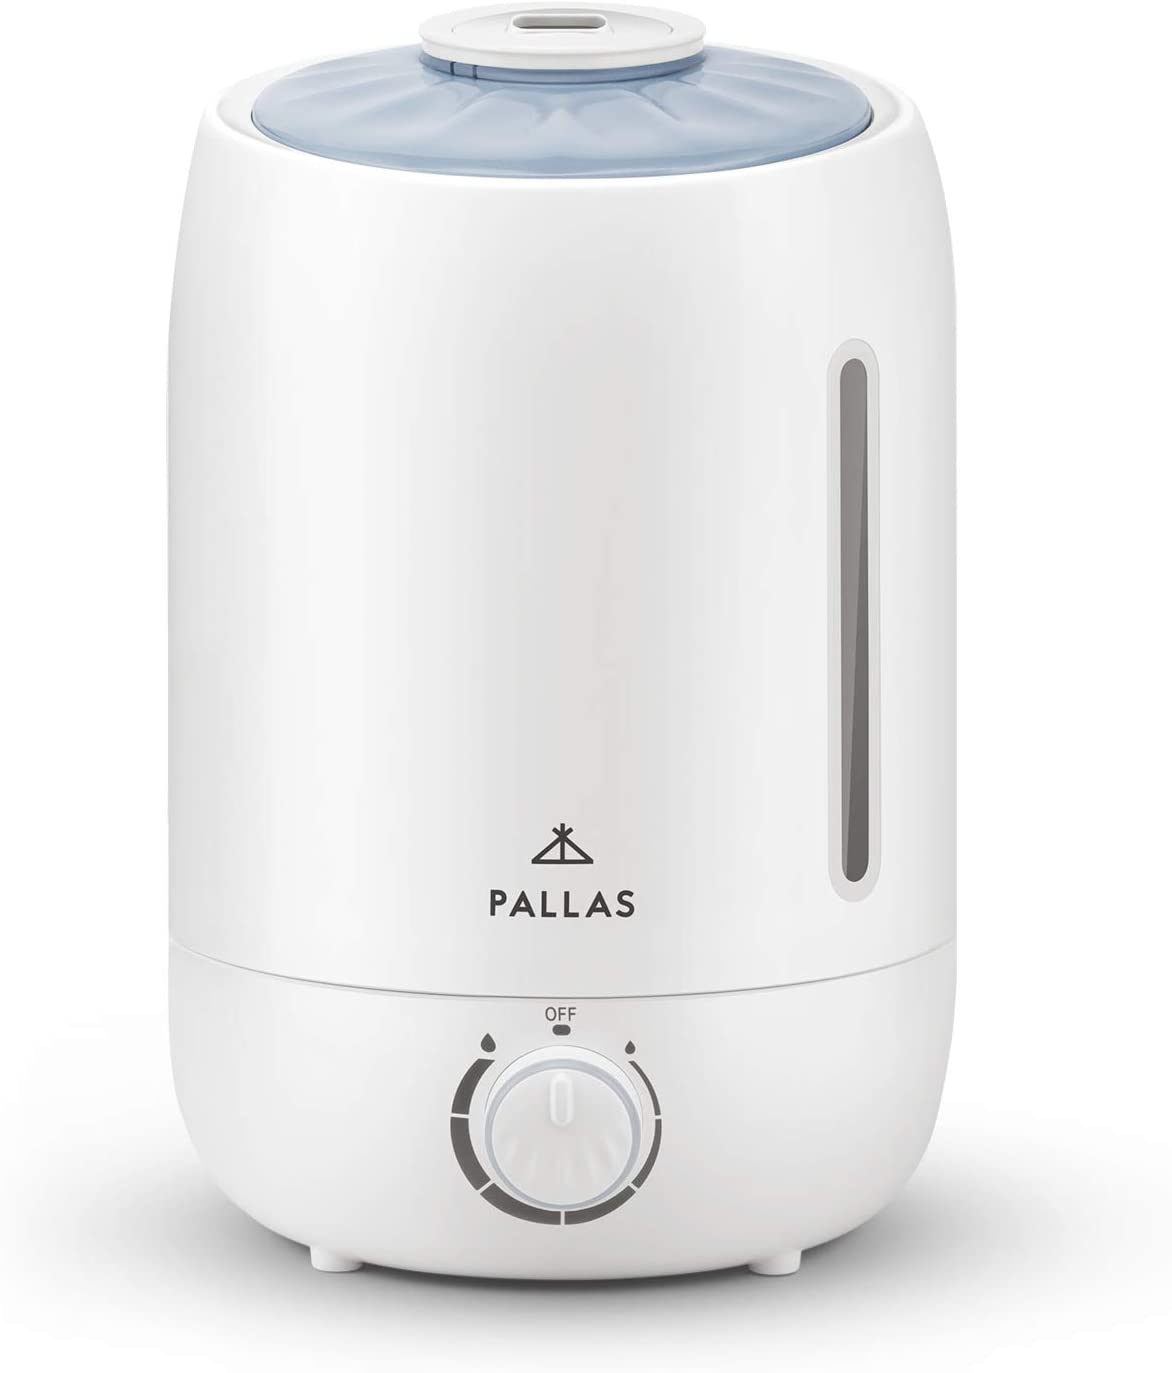 Pallas 2019 Humidifier – 5L Cool Mist Ultrasonic Humidifier for Bedroom, Baby, Home, Vaporizer for Large Room with Adjustable Mist Knob 360 Rotatable Mist Outlet